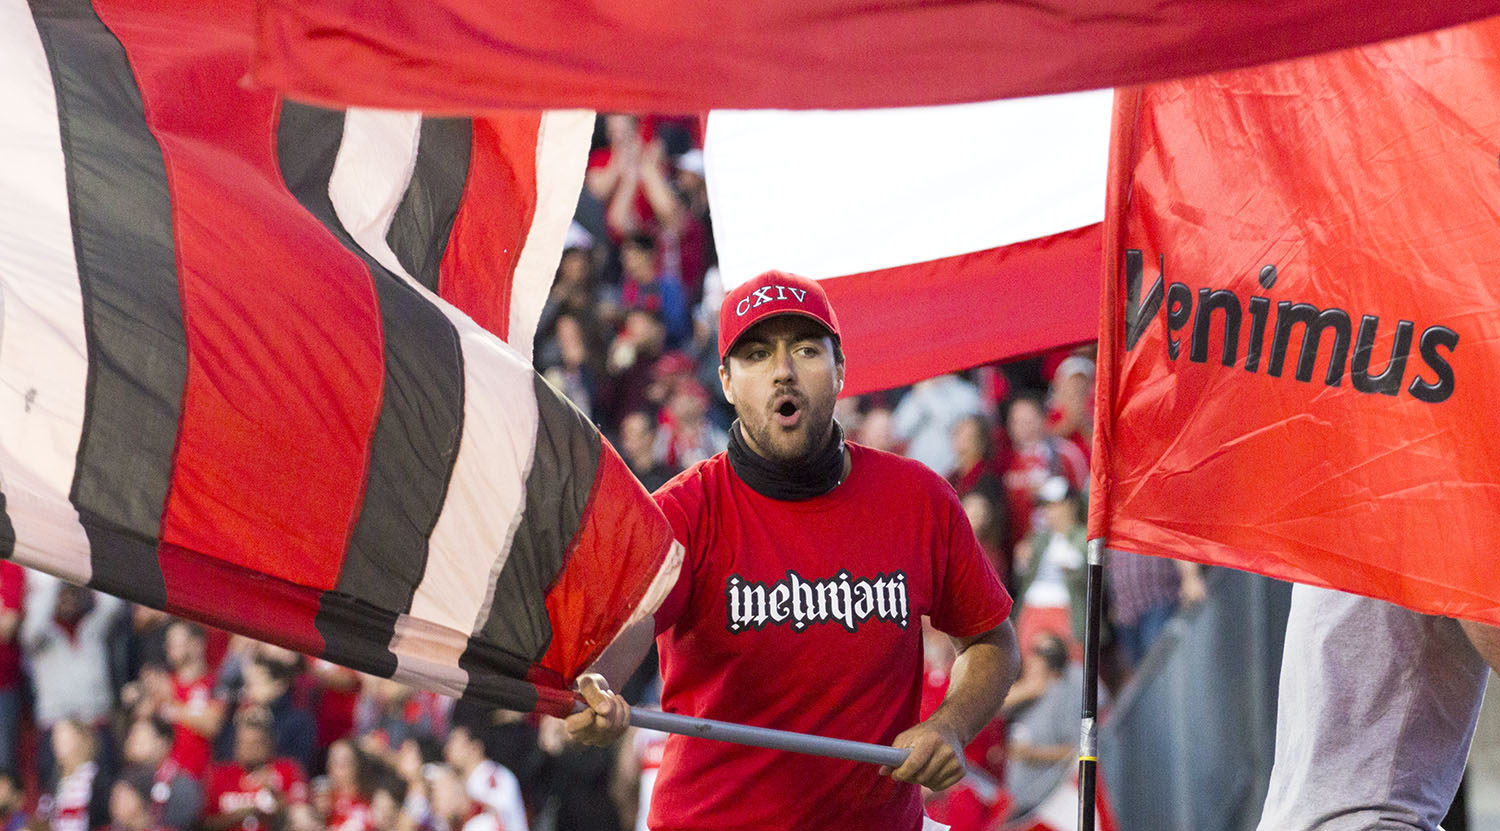 An inebriatti supporter waving a flag among other flags during the Canadian Championship Finale in 2017.Image by Dennis Marciniak of denMAR Media.